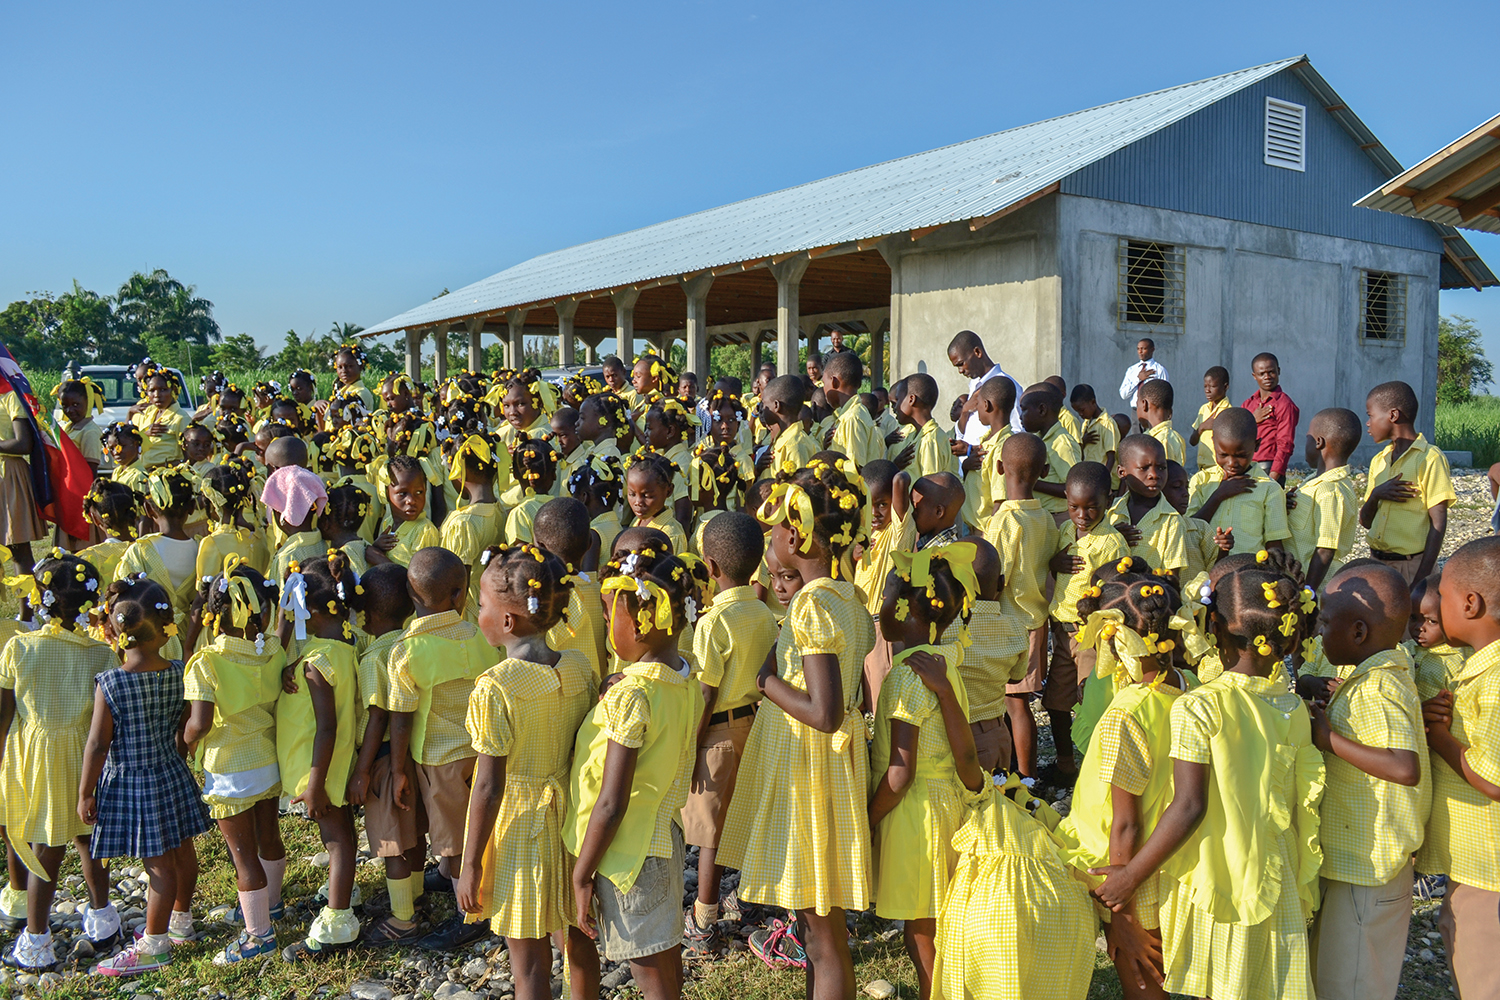 During the week, our churches serve as schools where education is the gift of empowerment to change lives.